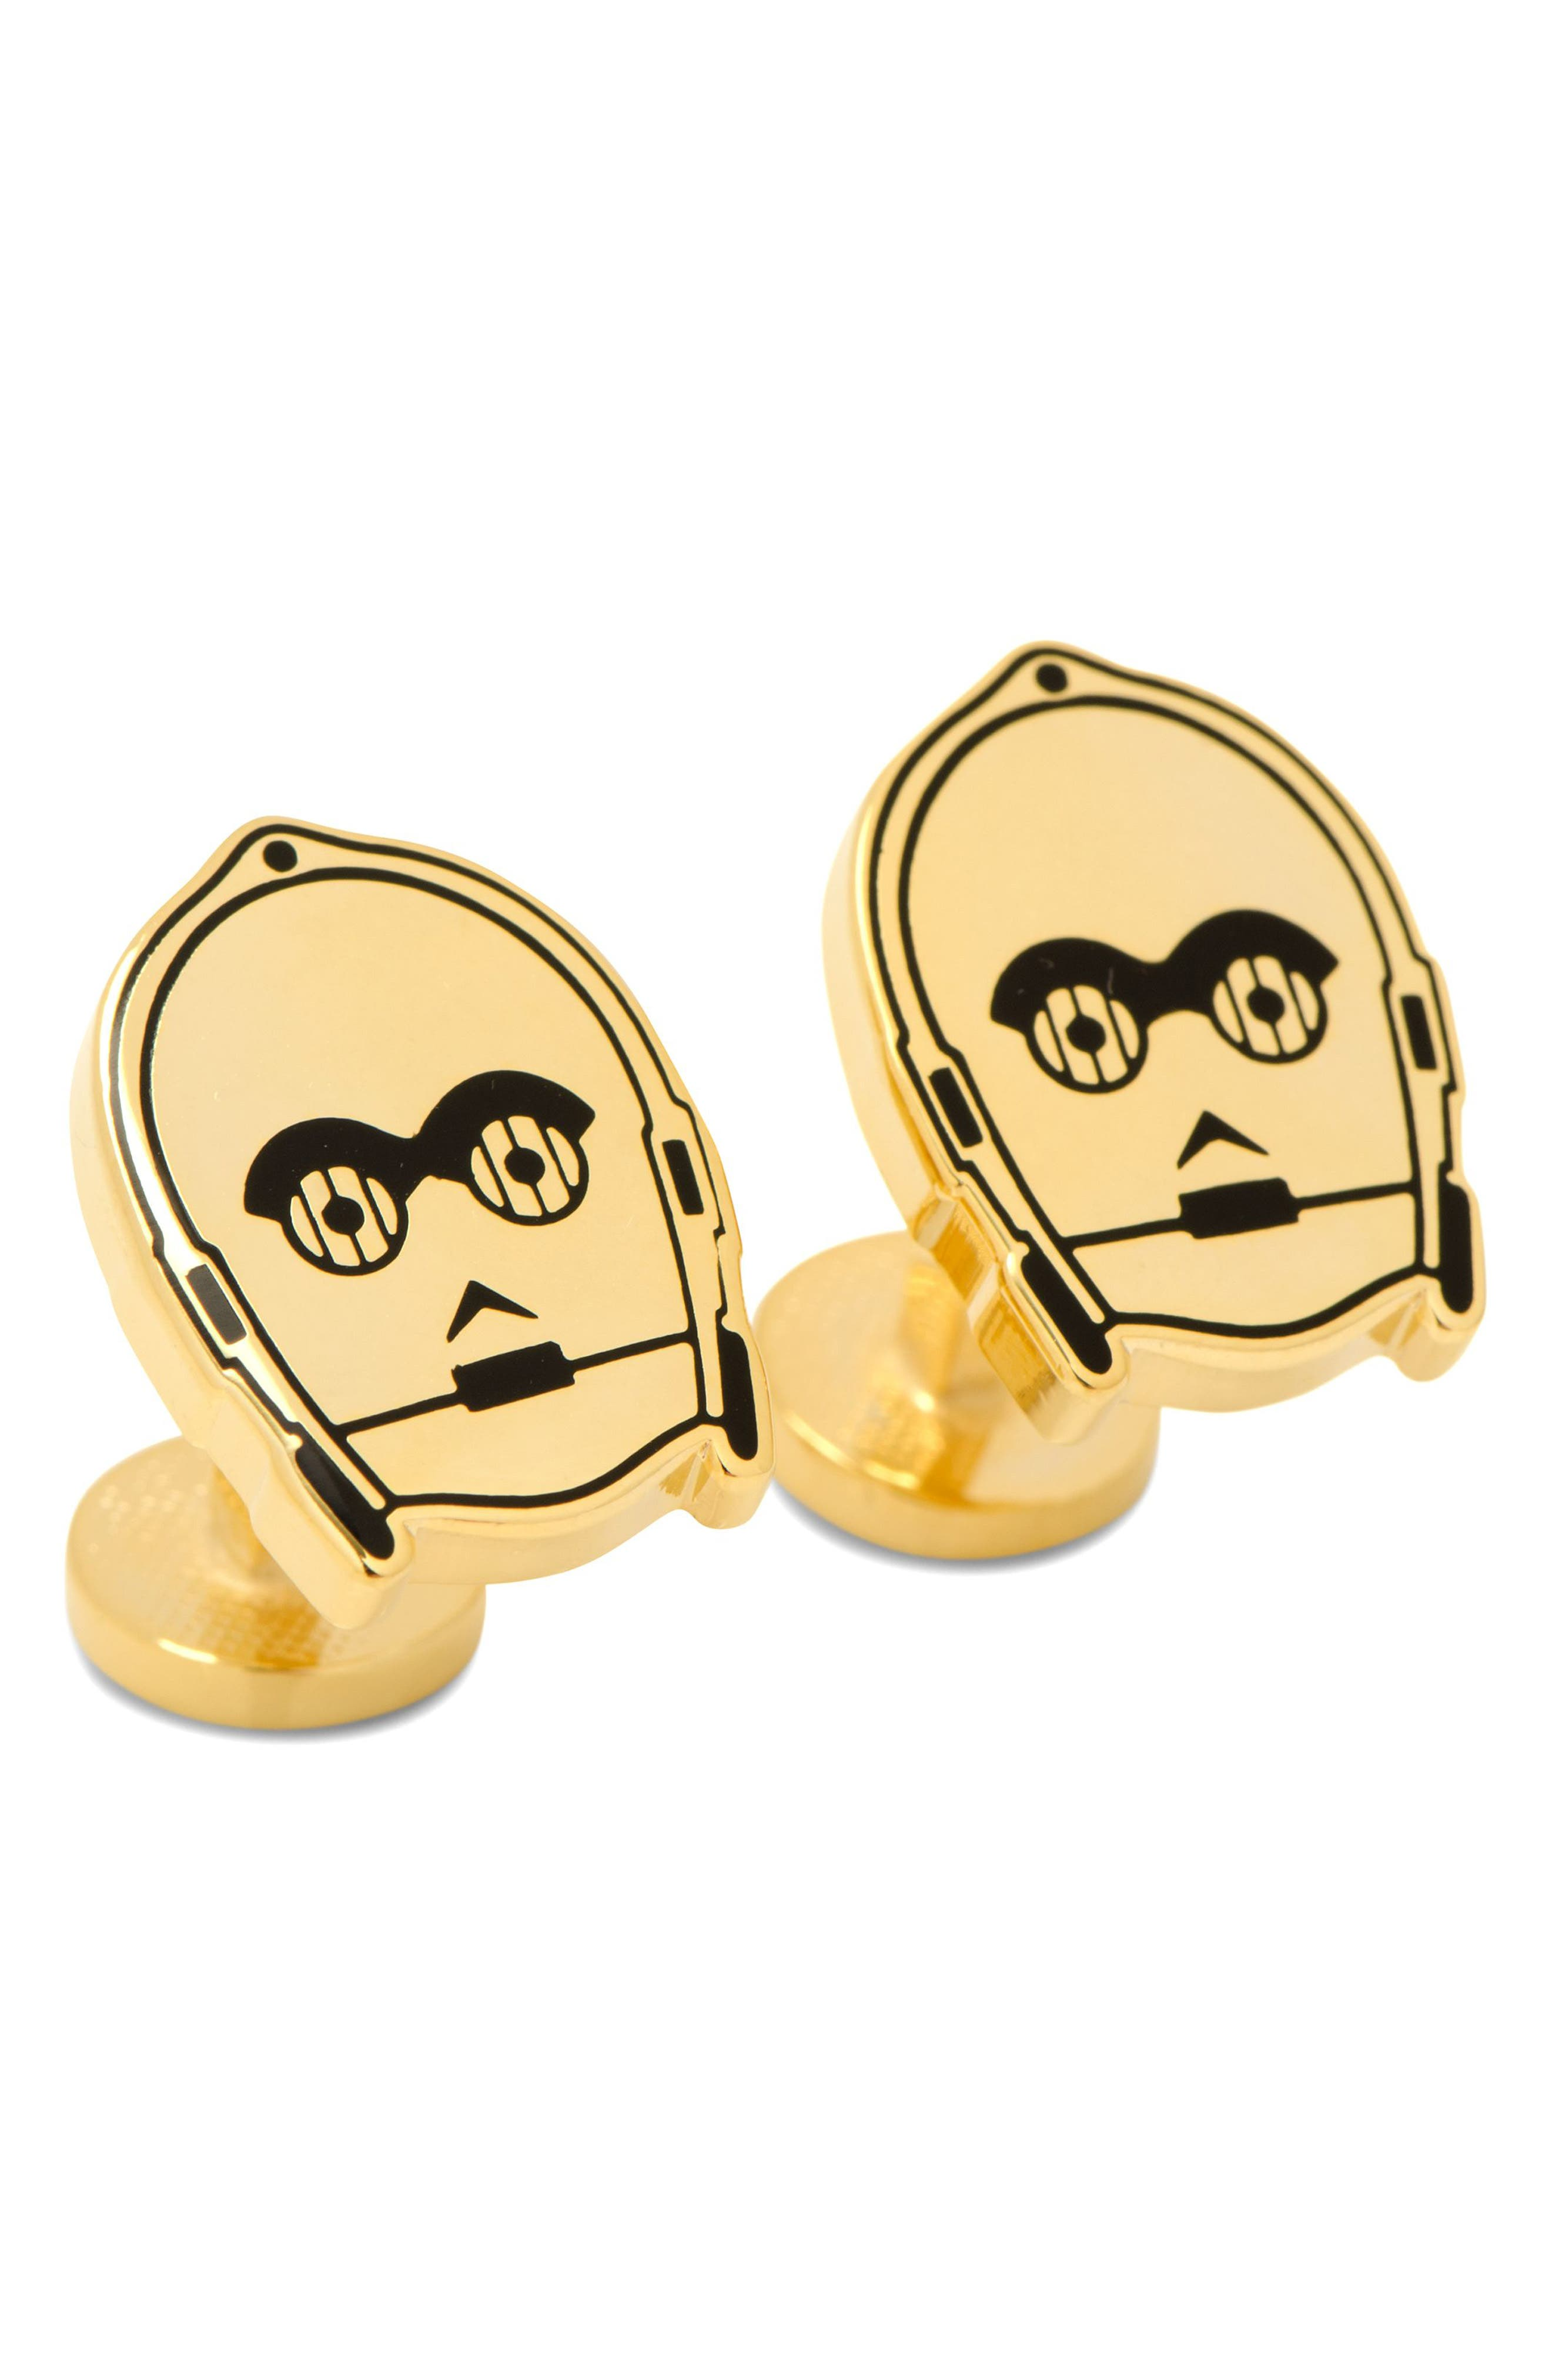 C-3PO Cuff Links,                             Main thumbnail 1, color,                             Gold